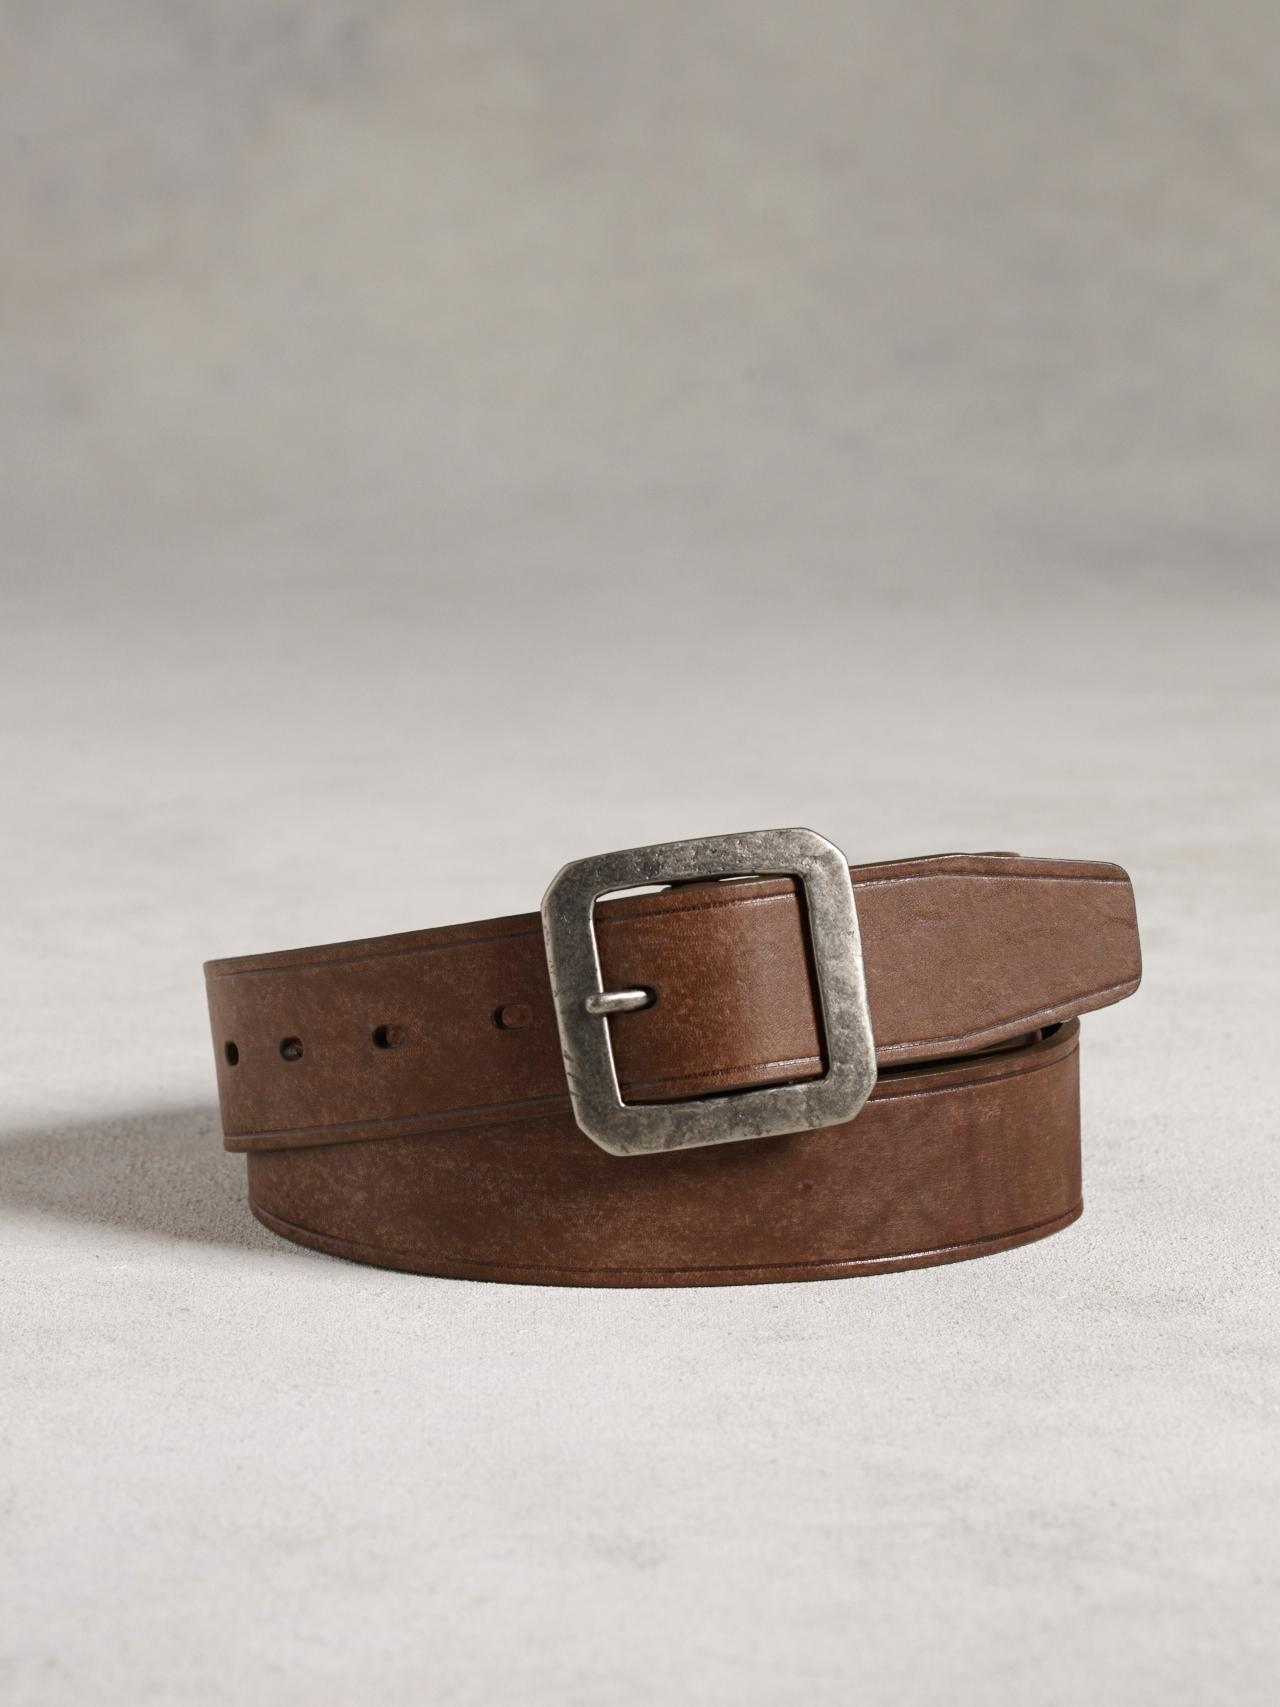 38MM FLAT STRAP WHEATCREA